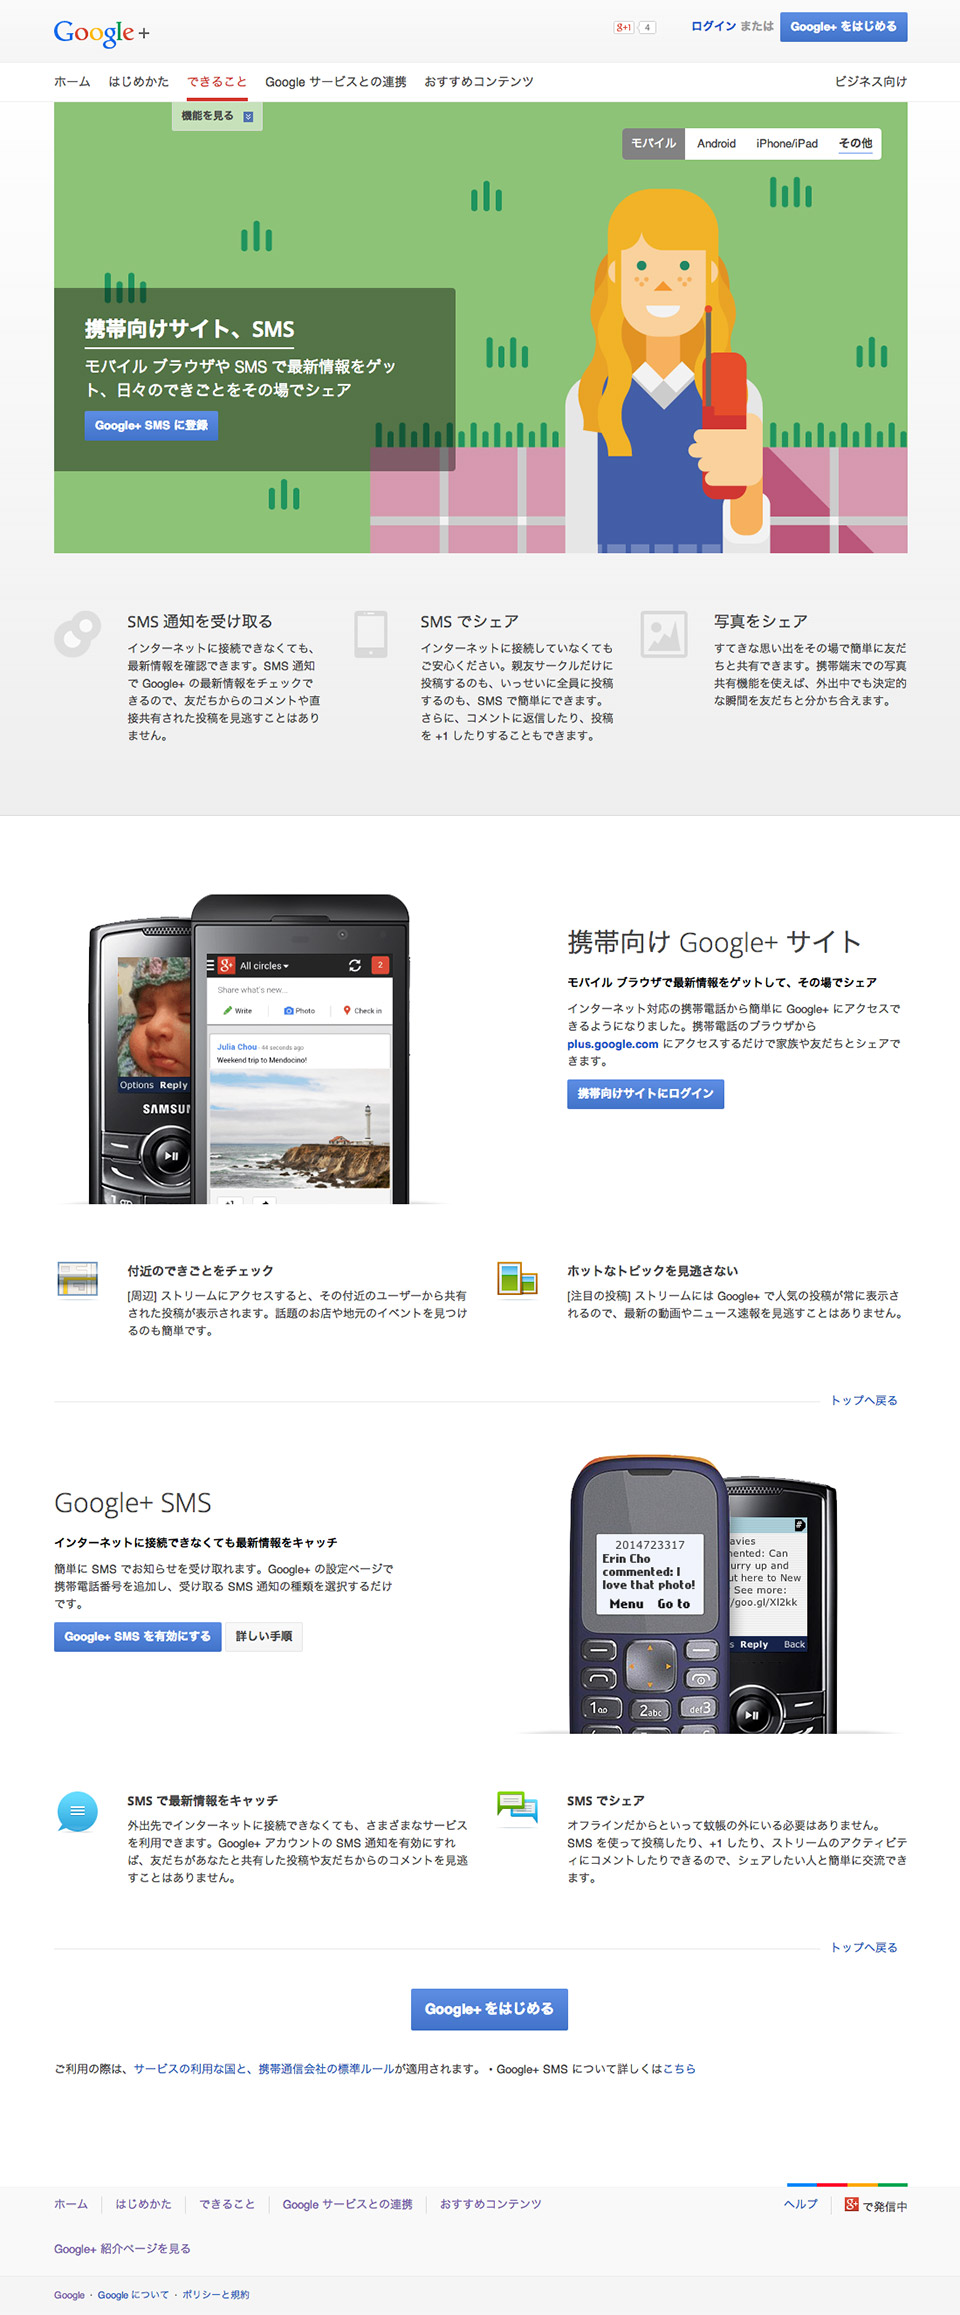 Google Japan - Learn More - SMS